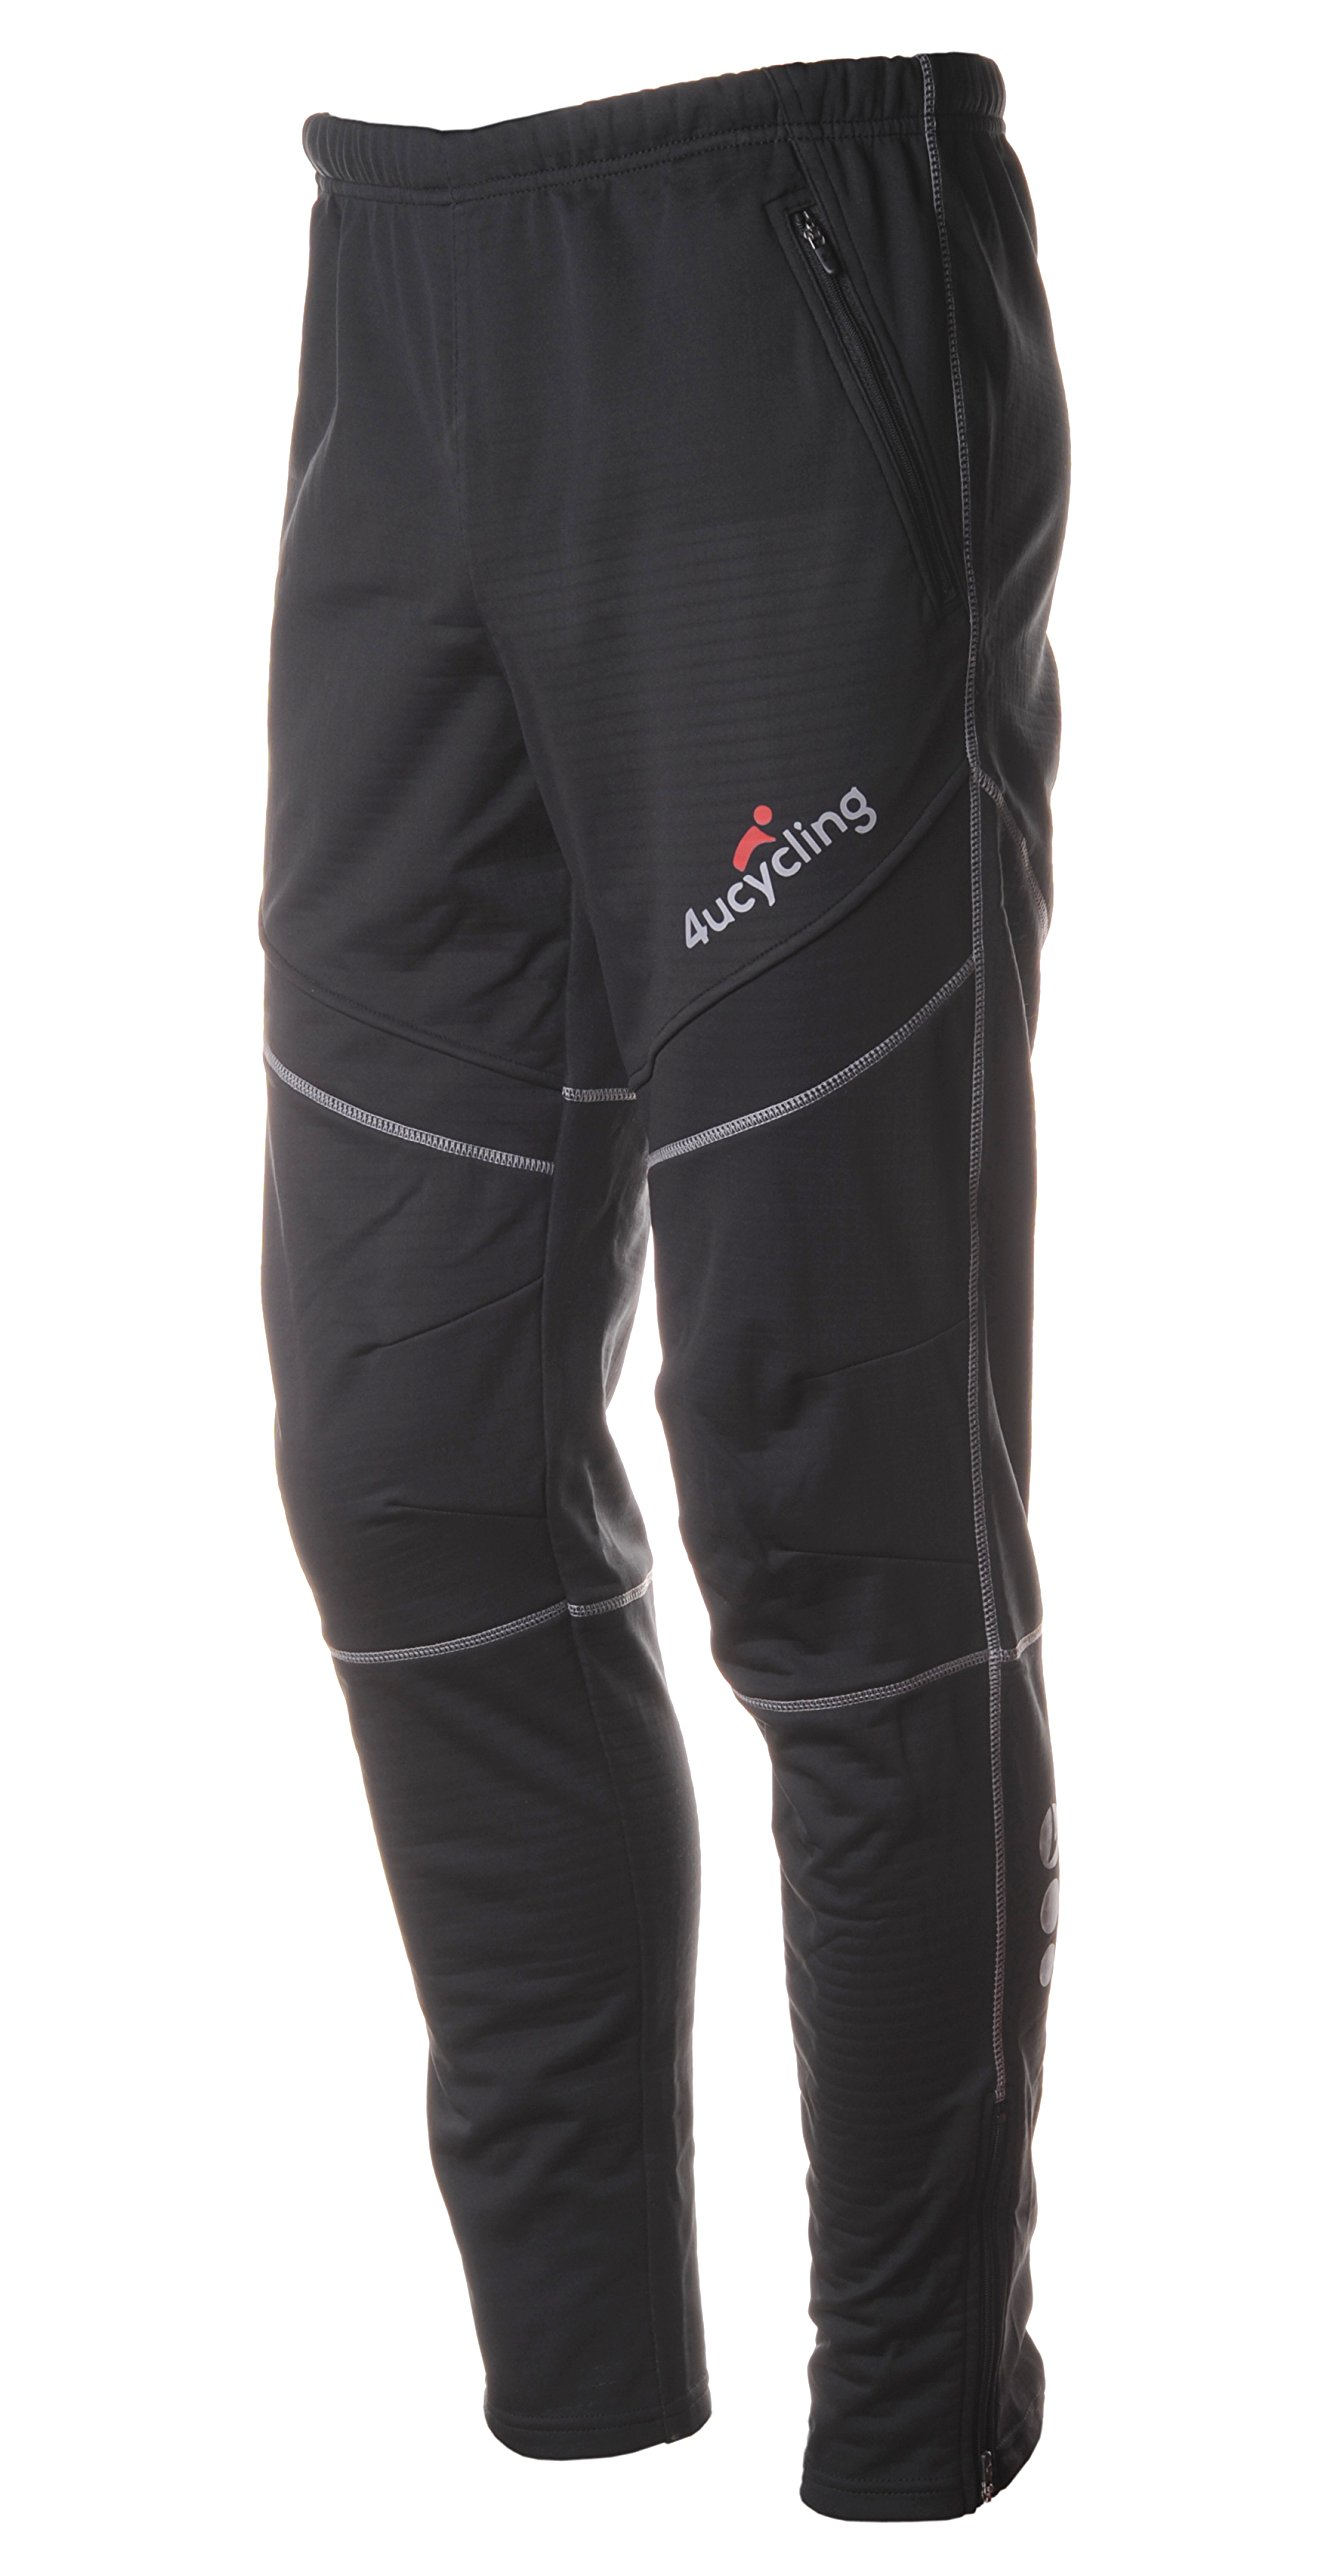 4ucycling Men's Bike Pants Fleeced for Cold Weather, Black, S